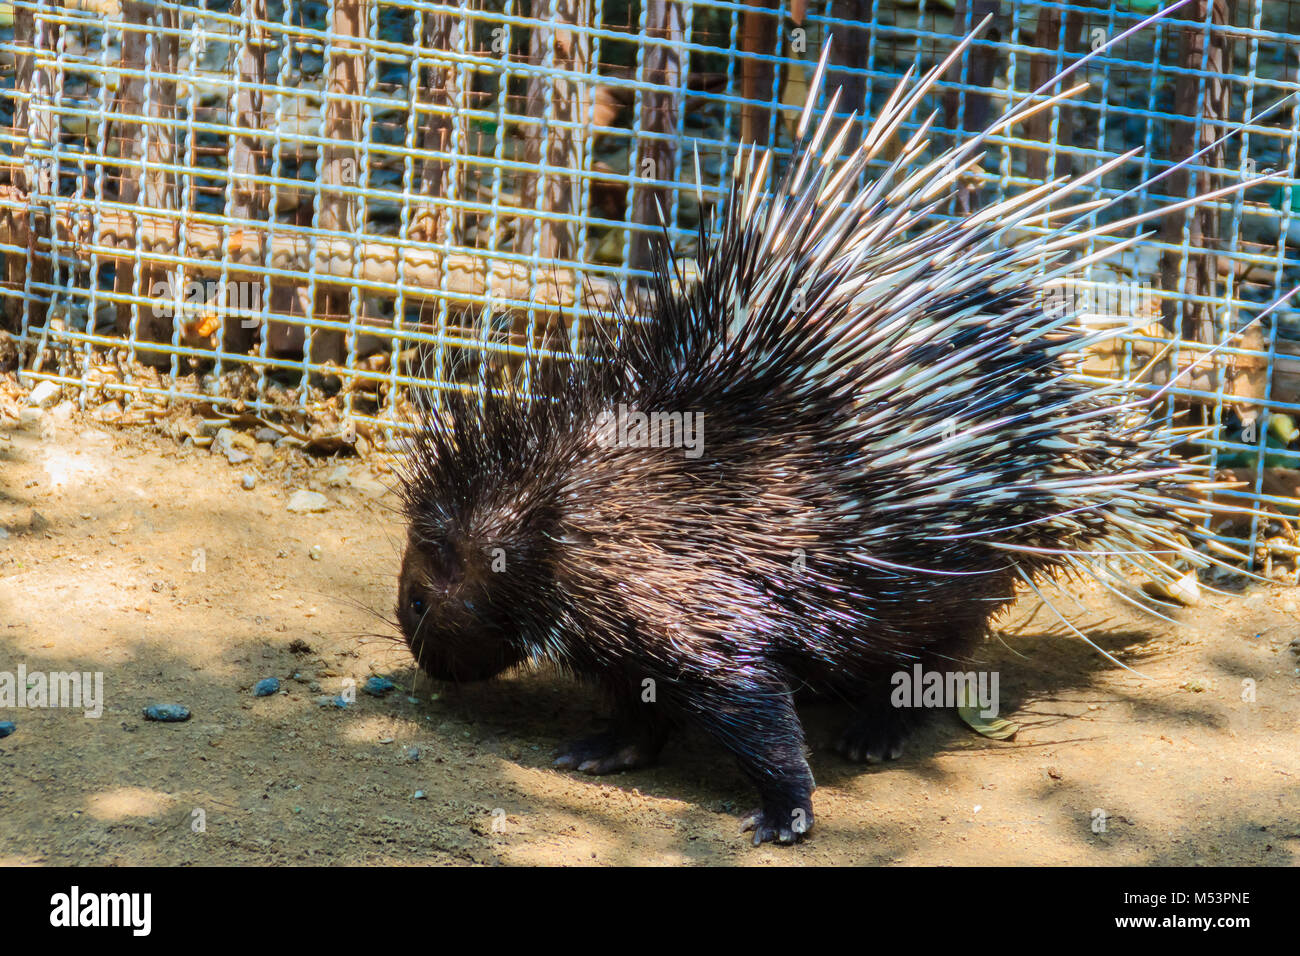 Cute Malayan porcupine, Himalayan porcupine, Large porcupine (Hystrix brachyur), a species of rodent in the family - Stock Image